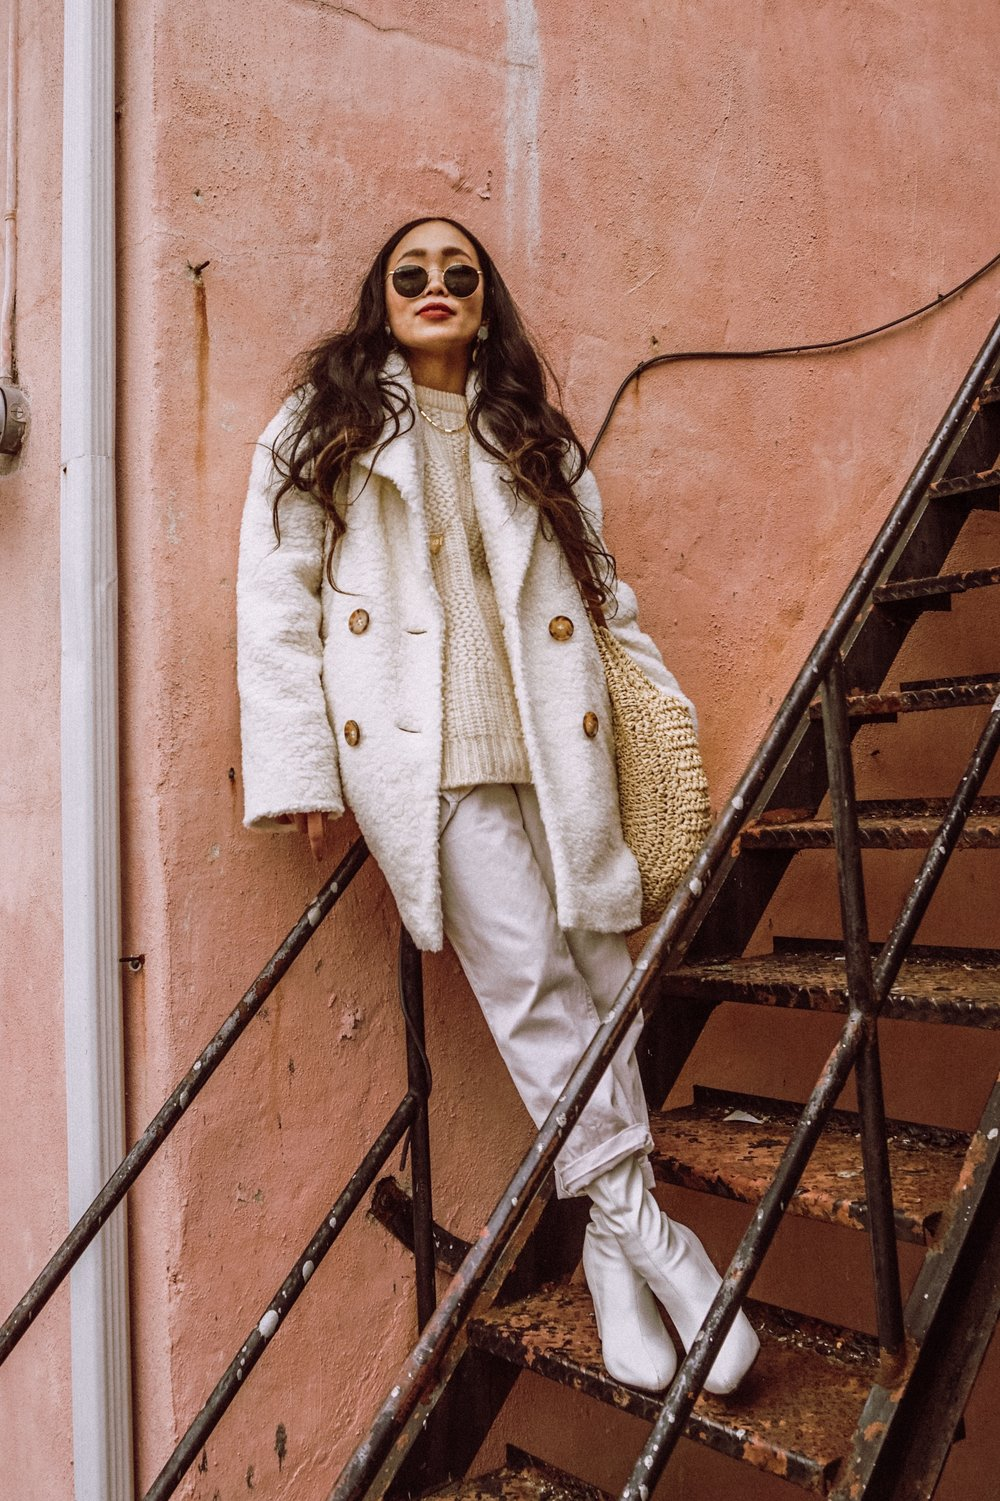 Easy Going MONDAY - Let's just take it easy, it's only Monday - I want to dress crisp, but as cozy as I can be at the same time on Mondays. White monochromatic looks are my favorite styling at the moment, this styling puts in such a chic mood, yet so cozy with loose and baggy items.